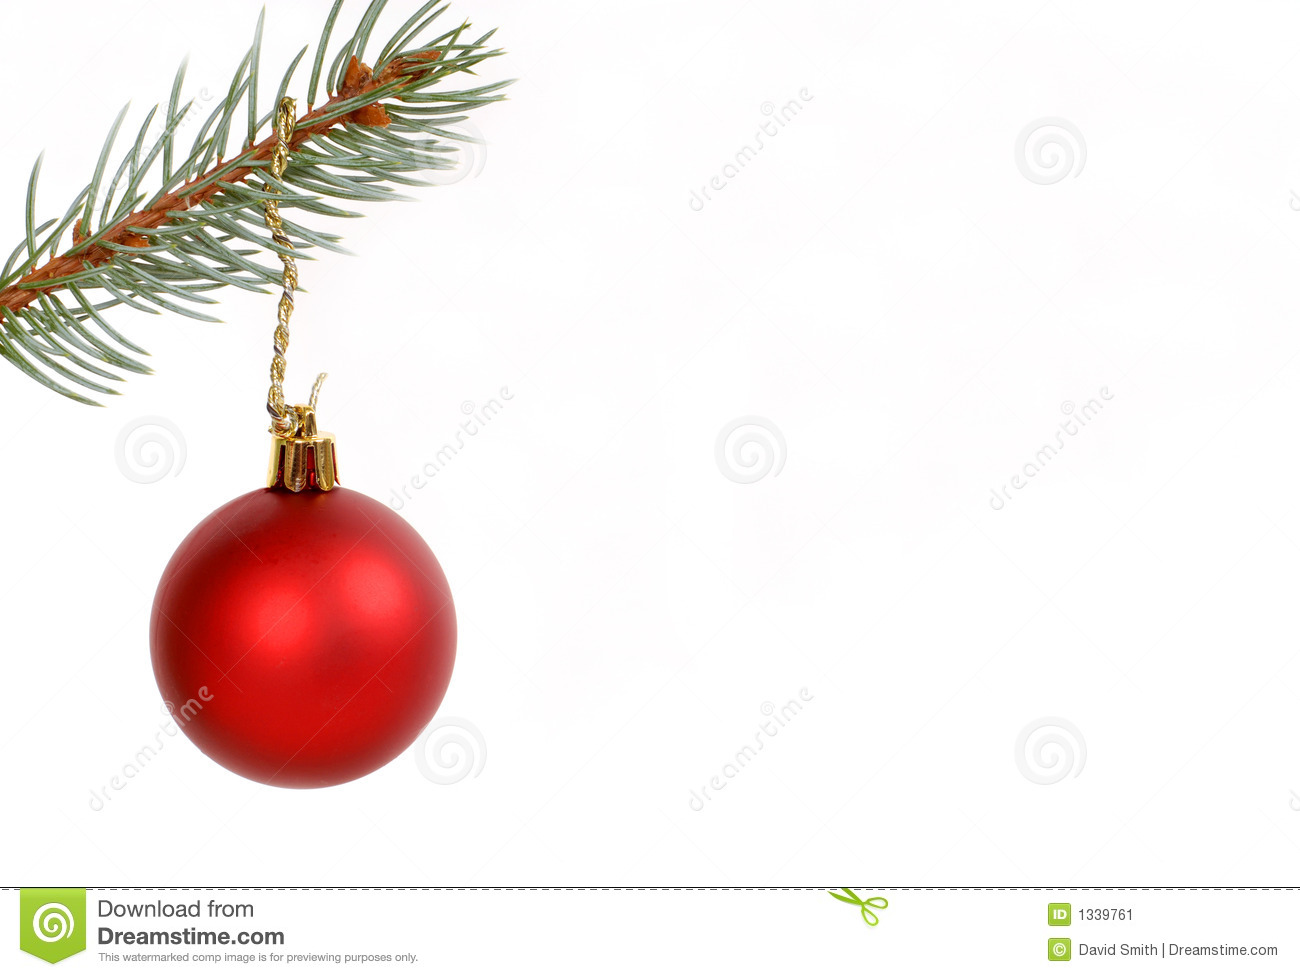 Round red christmas ornament hanging from evergreen branch stock image image 1339761 - Hanging christmas ornaments ...